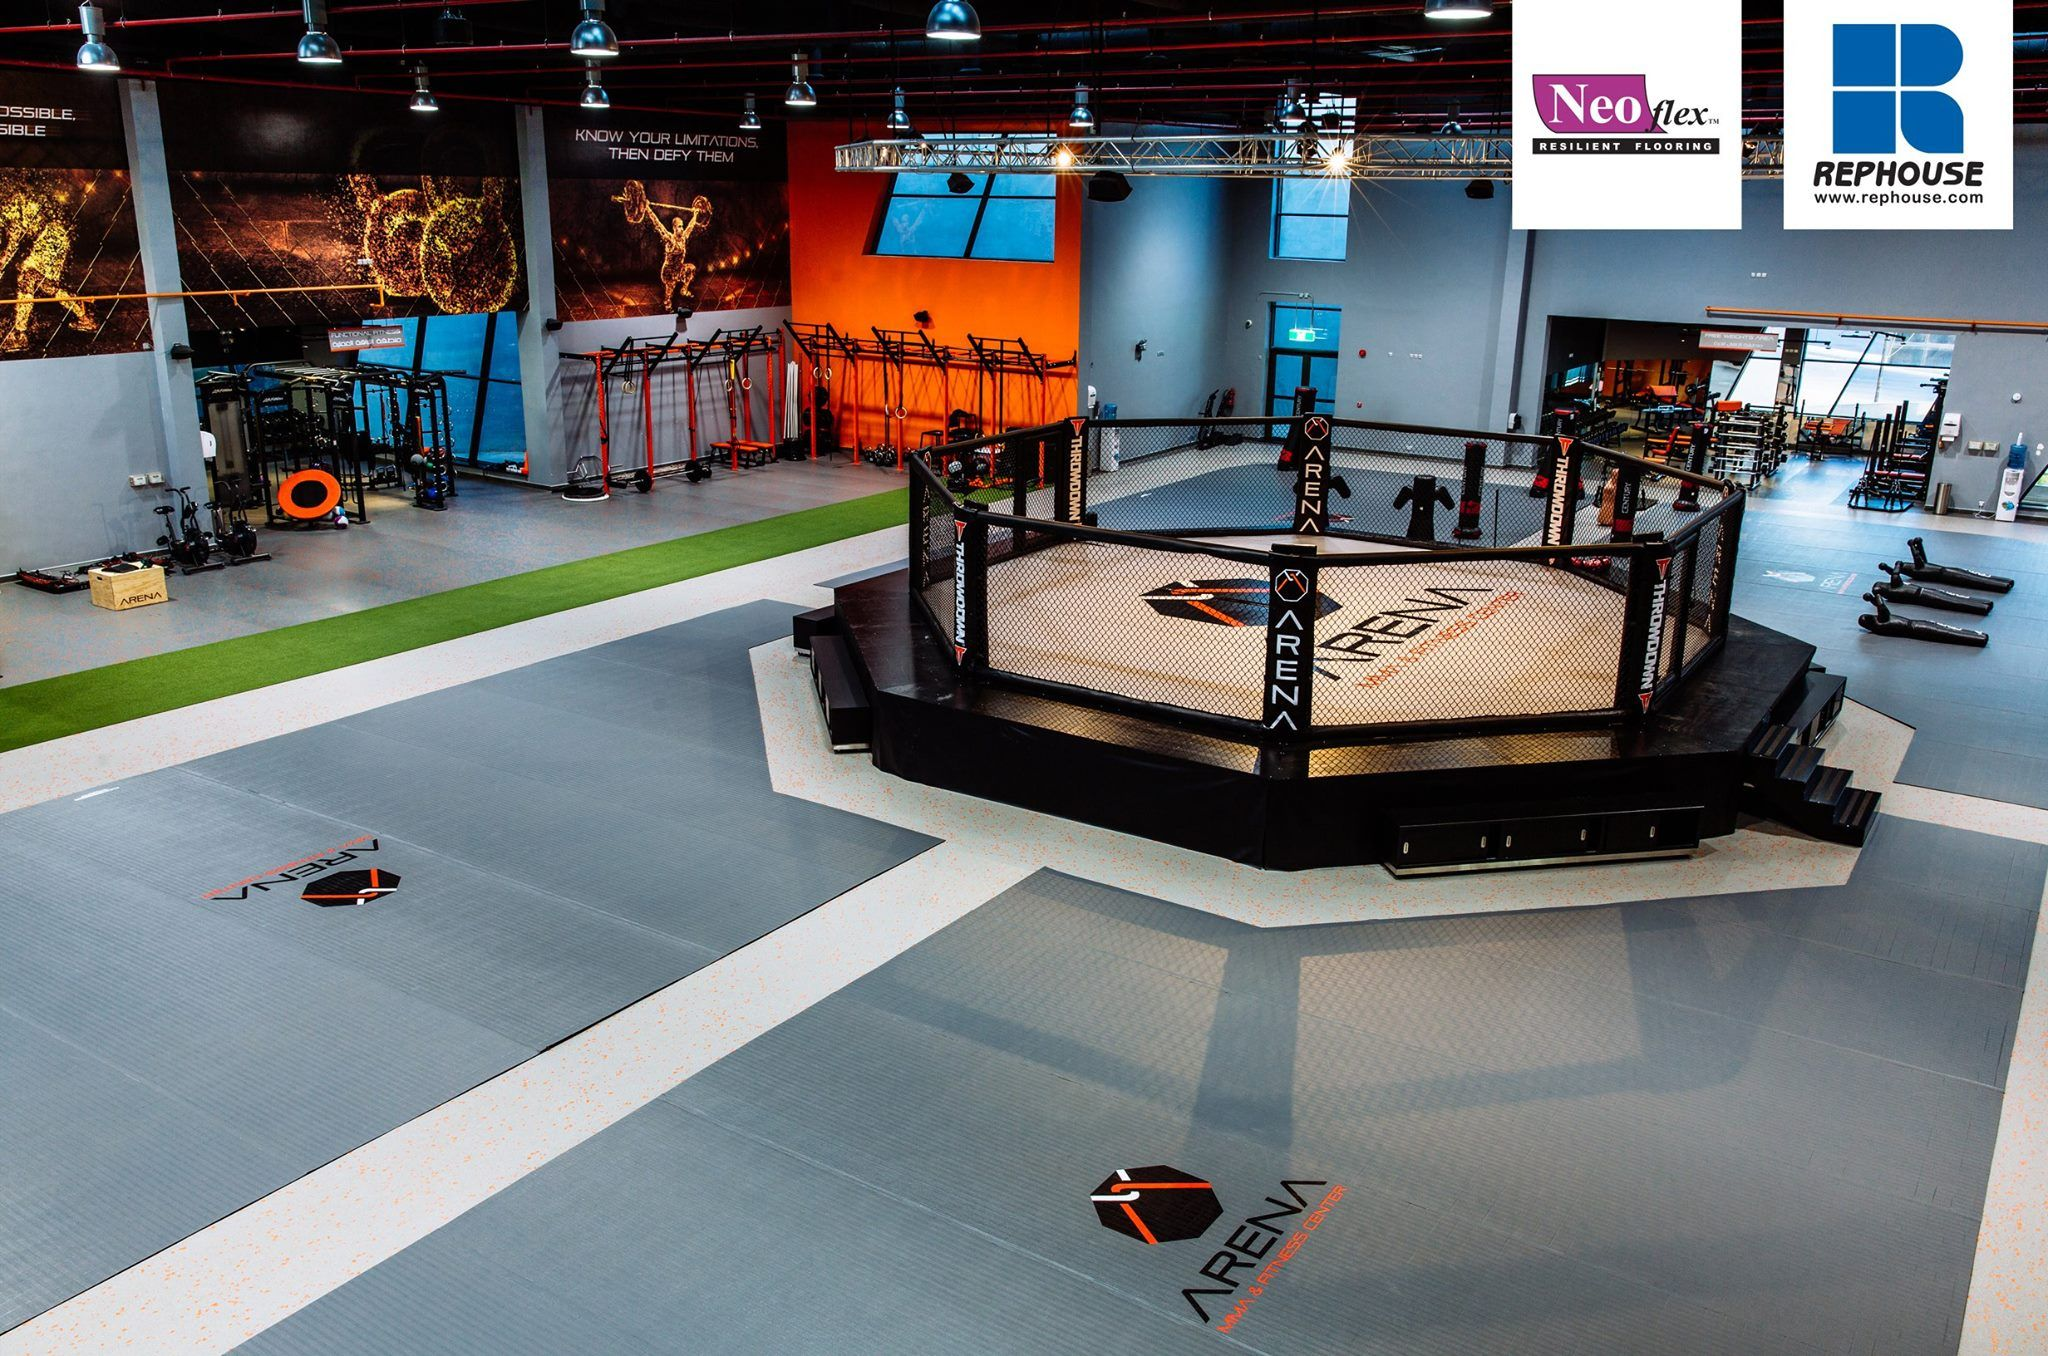 Neoflex series bfc rubber fitness flooring arena